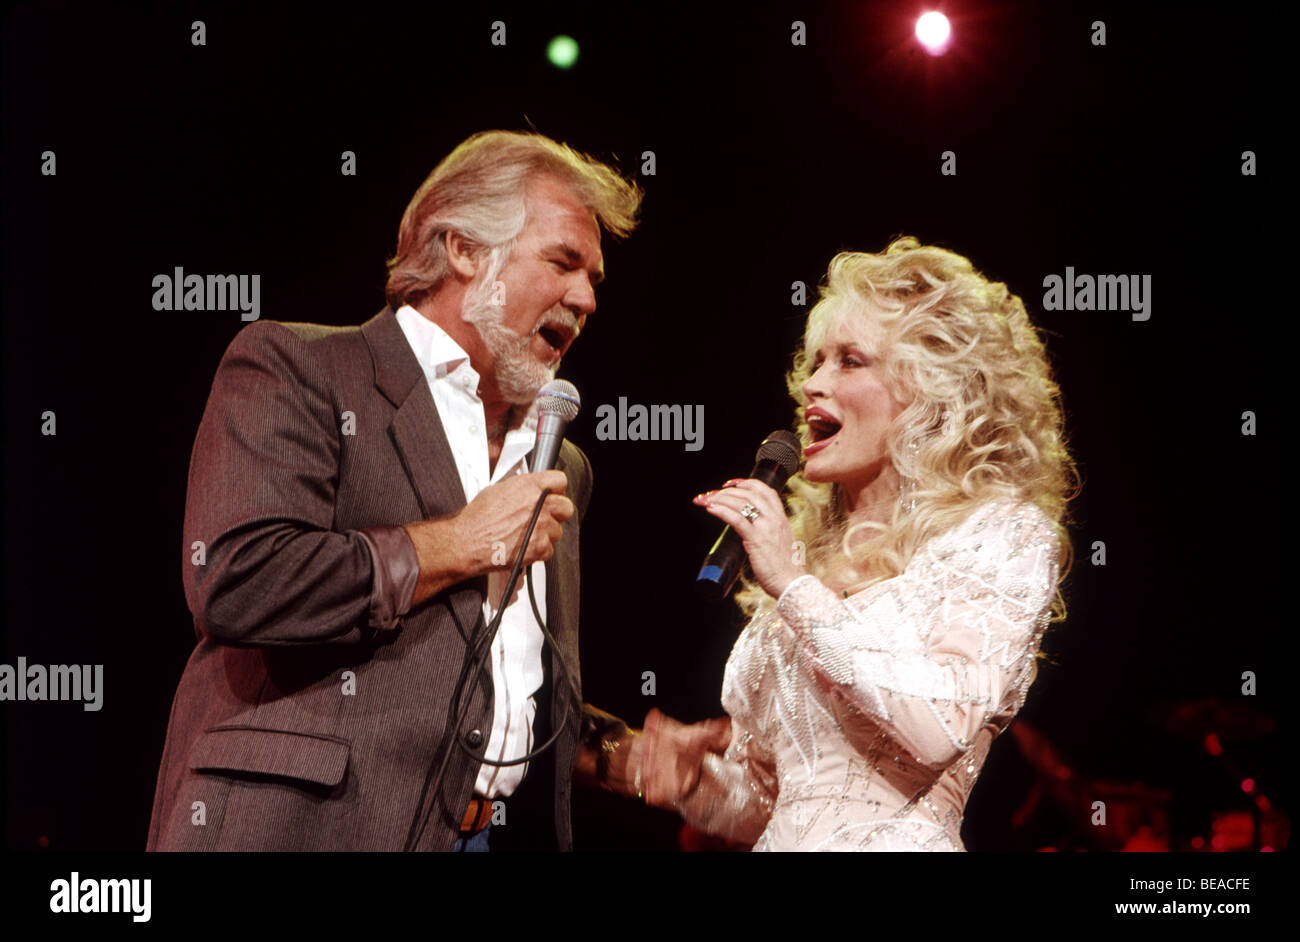 DOLLY PARTON duets with Kenny Rogers in July 1989 - Stock Image